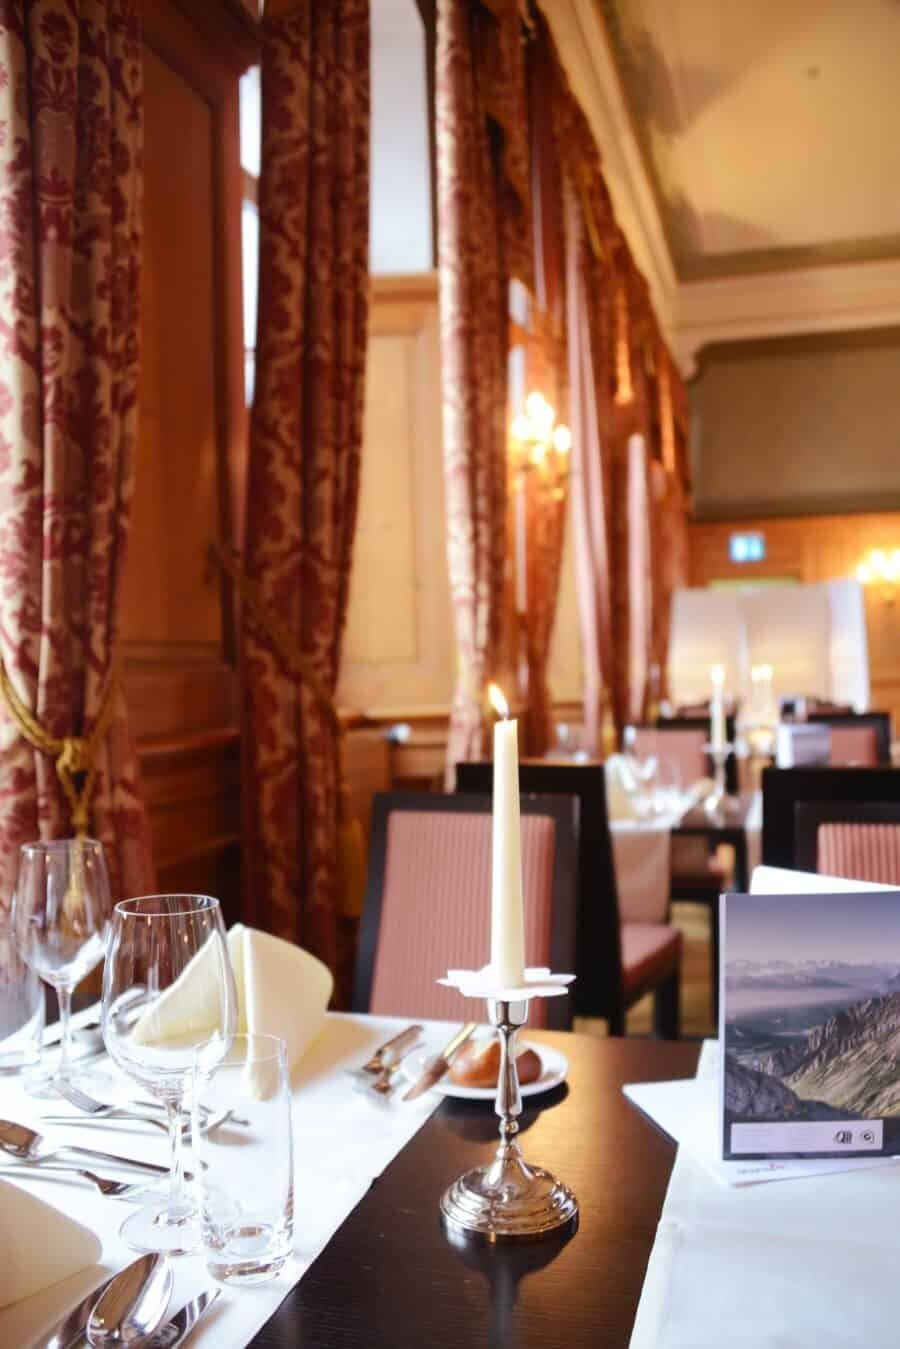 Mount Pilatus Hotel Review 35